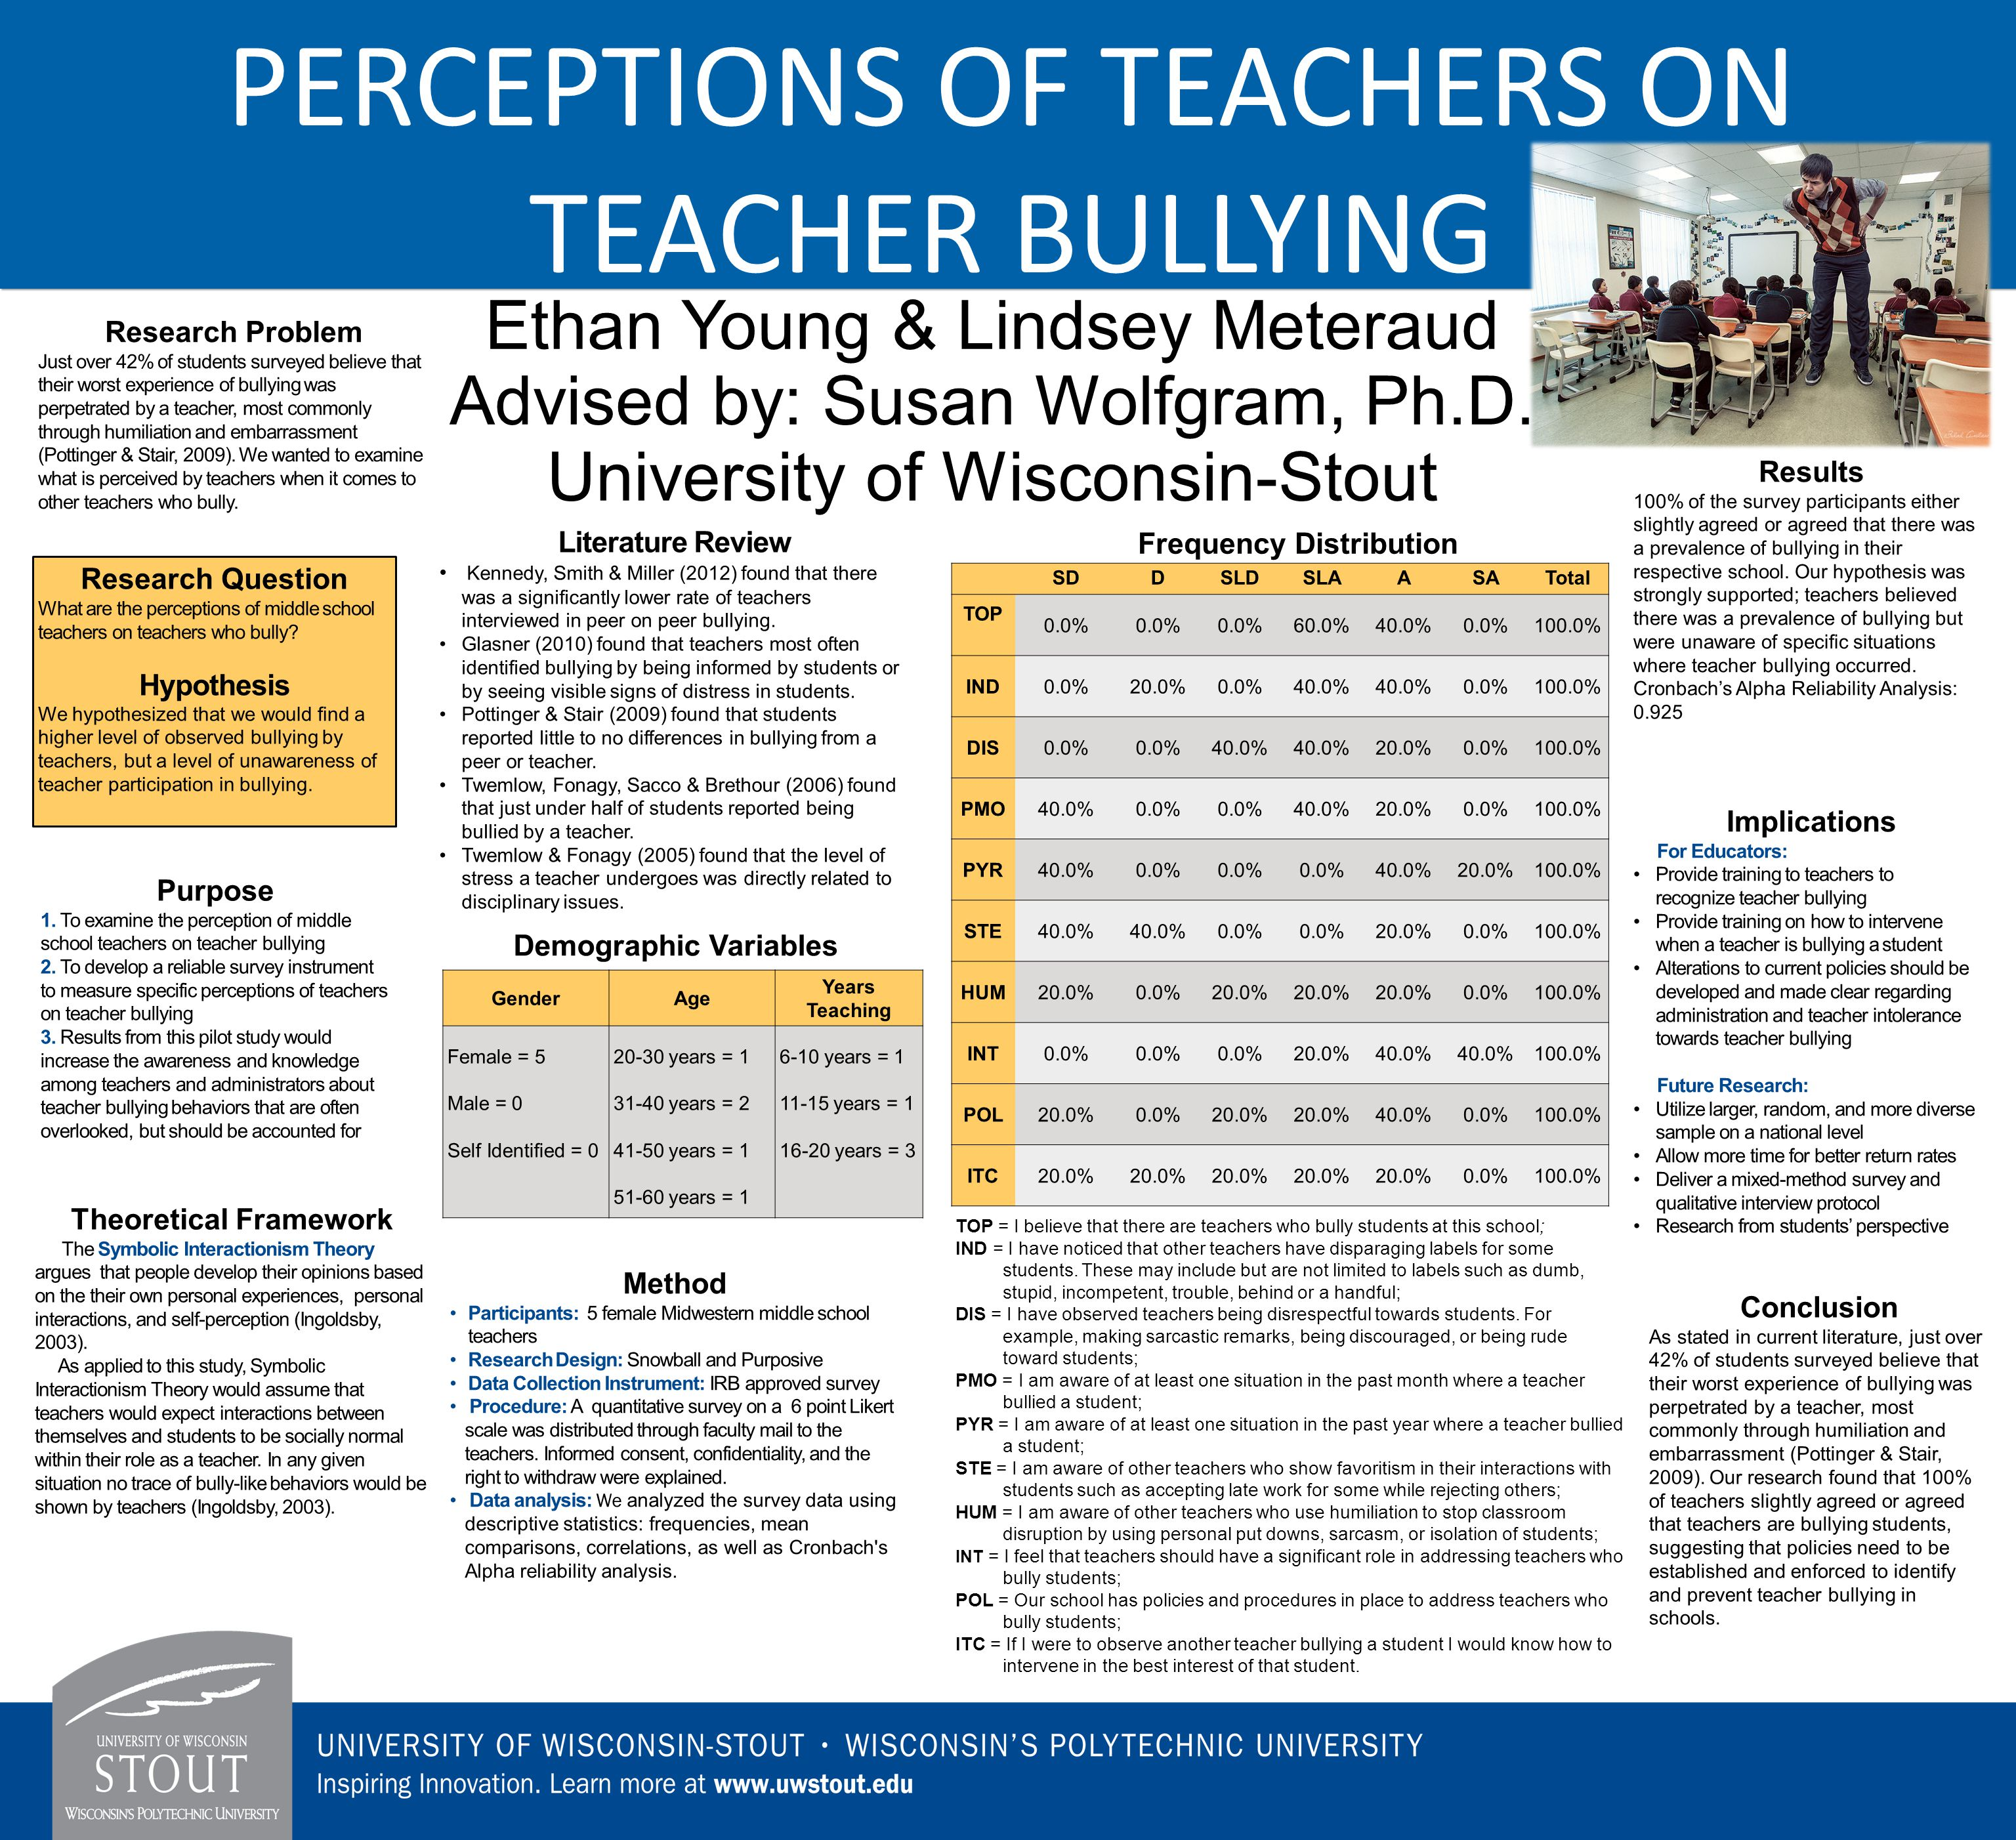 Ethan Young & Lindsey Meteraud Advised by: Susan Wolfgram, Ph.D.